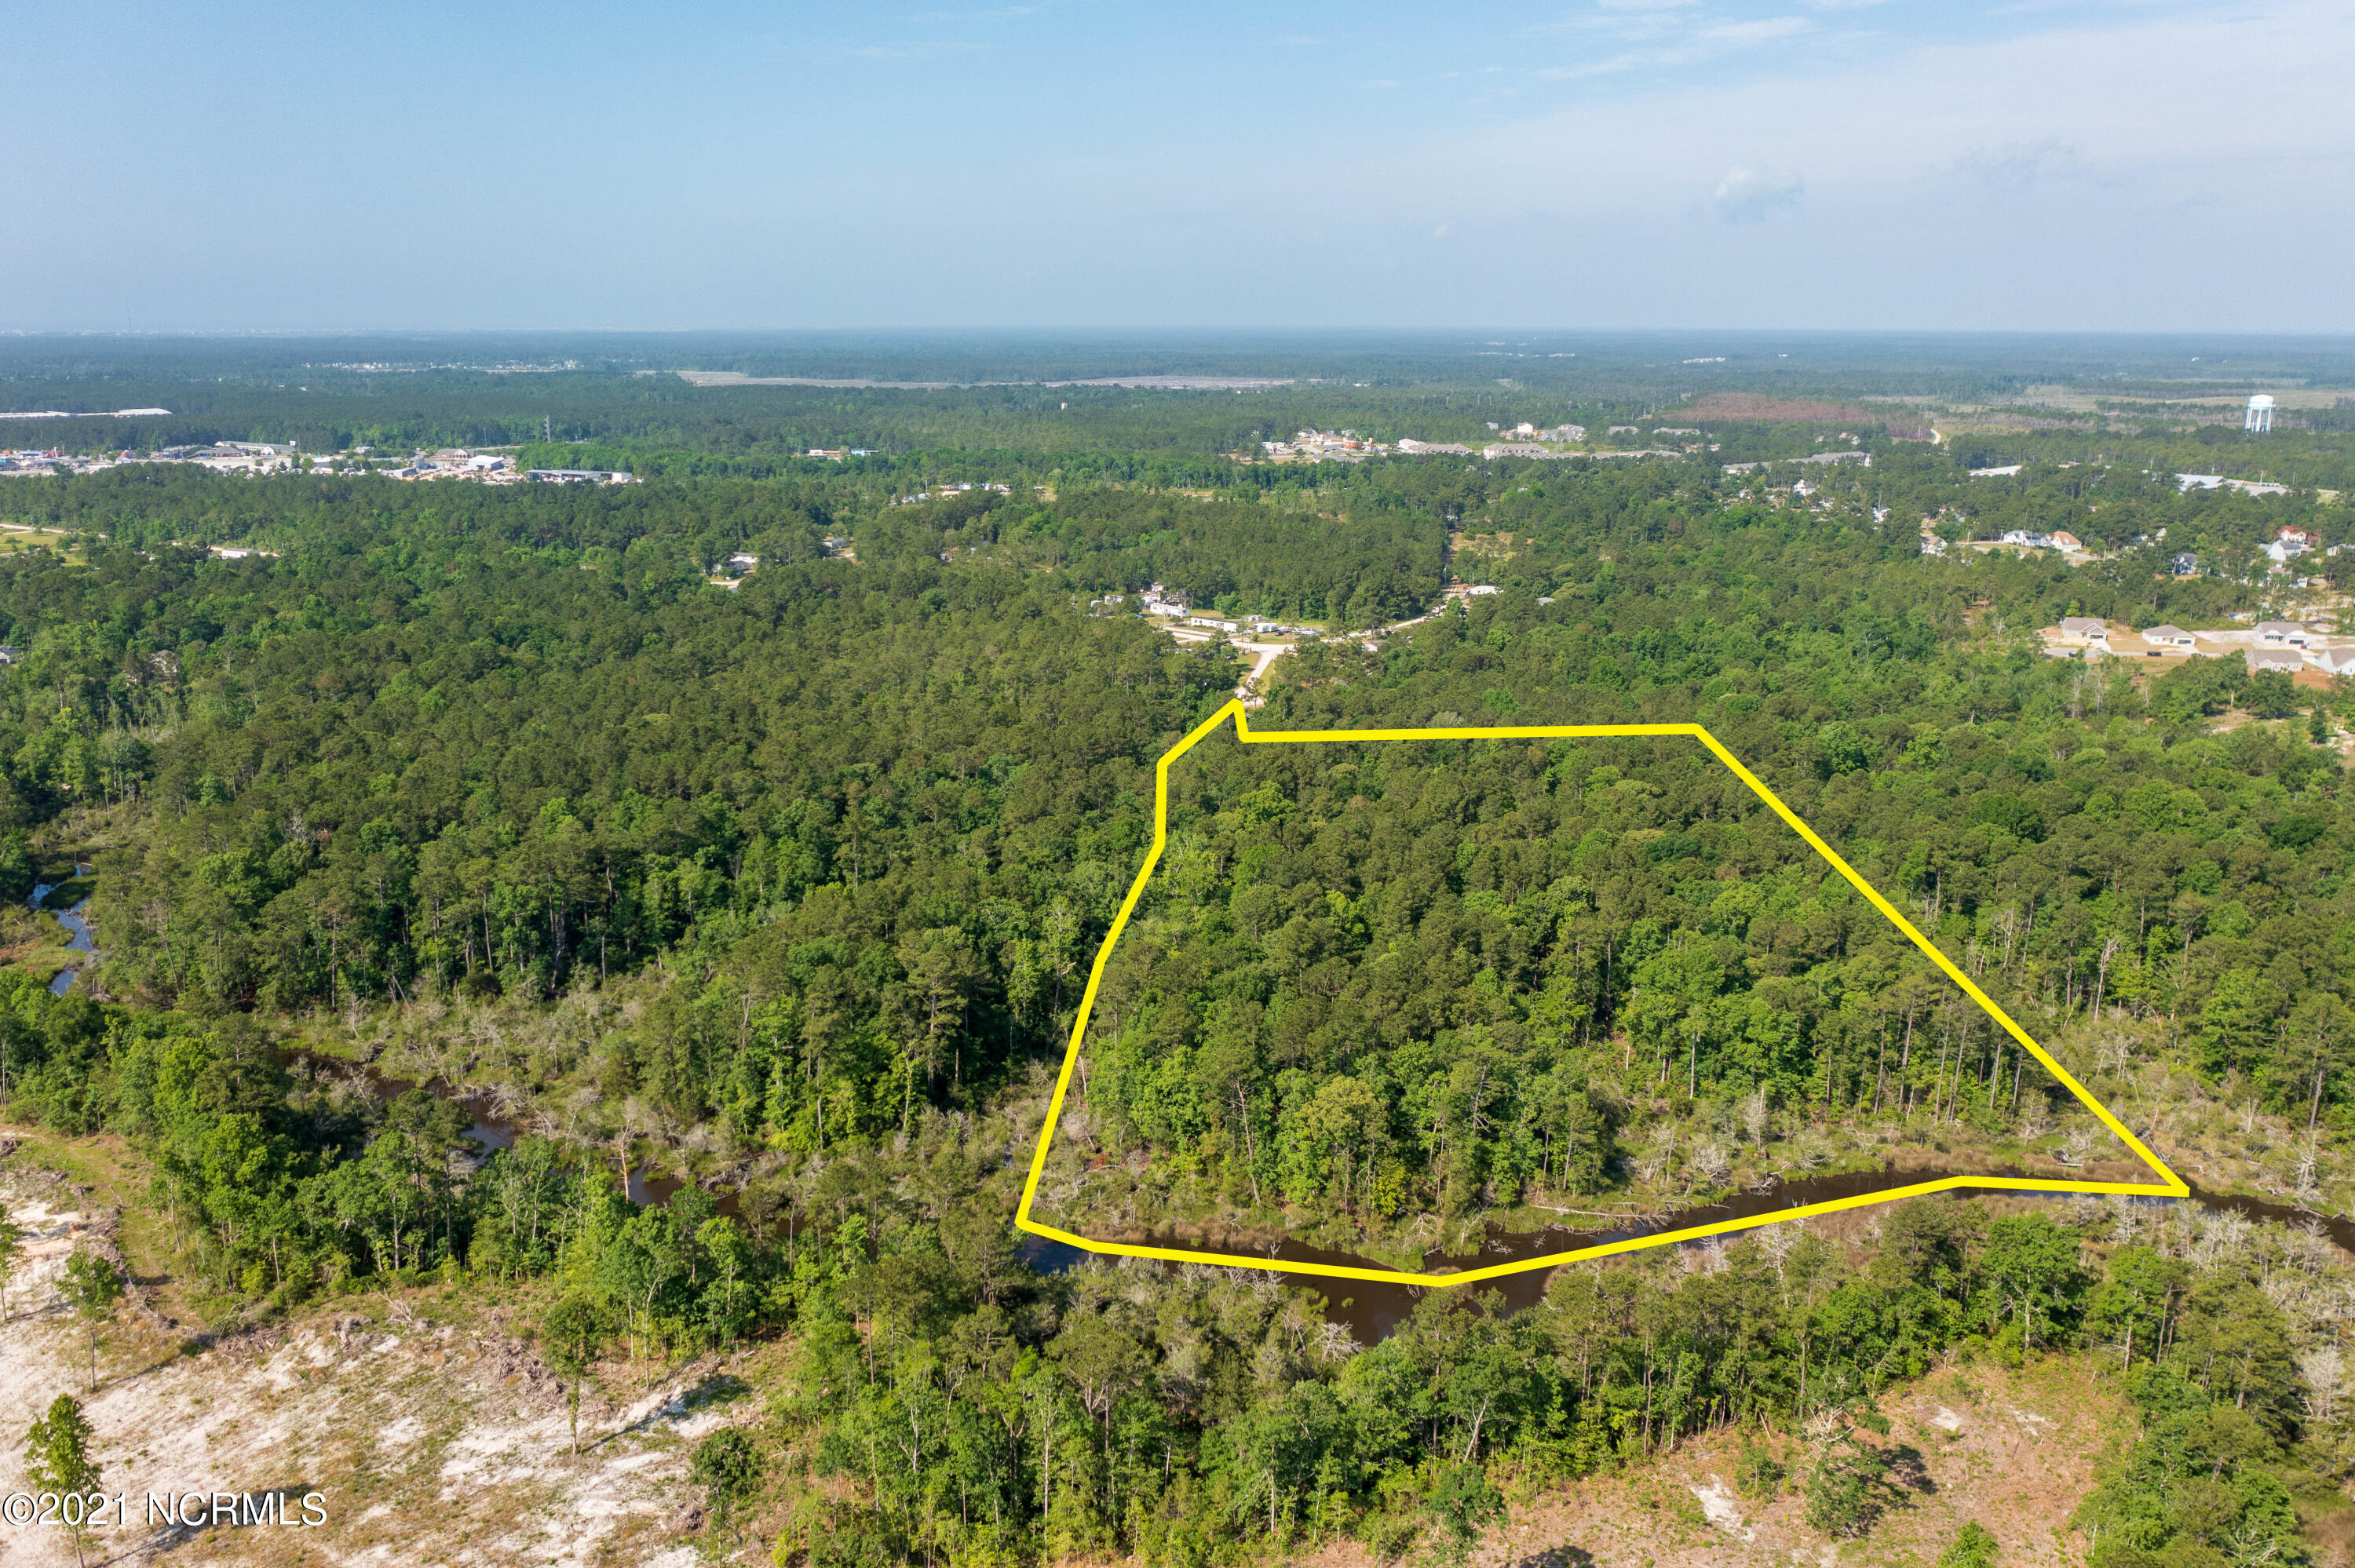 Offering 10+ acres in Sneads Ferry with over 600 ft of water frontage! This lot is tucked away offering tons of privacy to build your waterfront dream home!